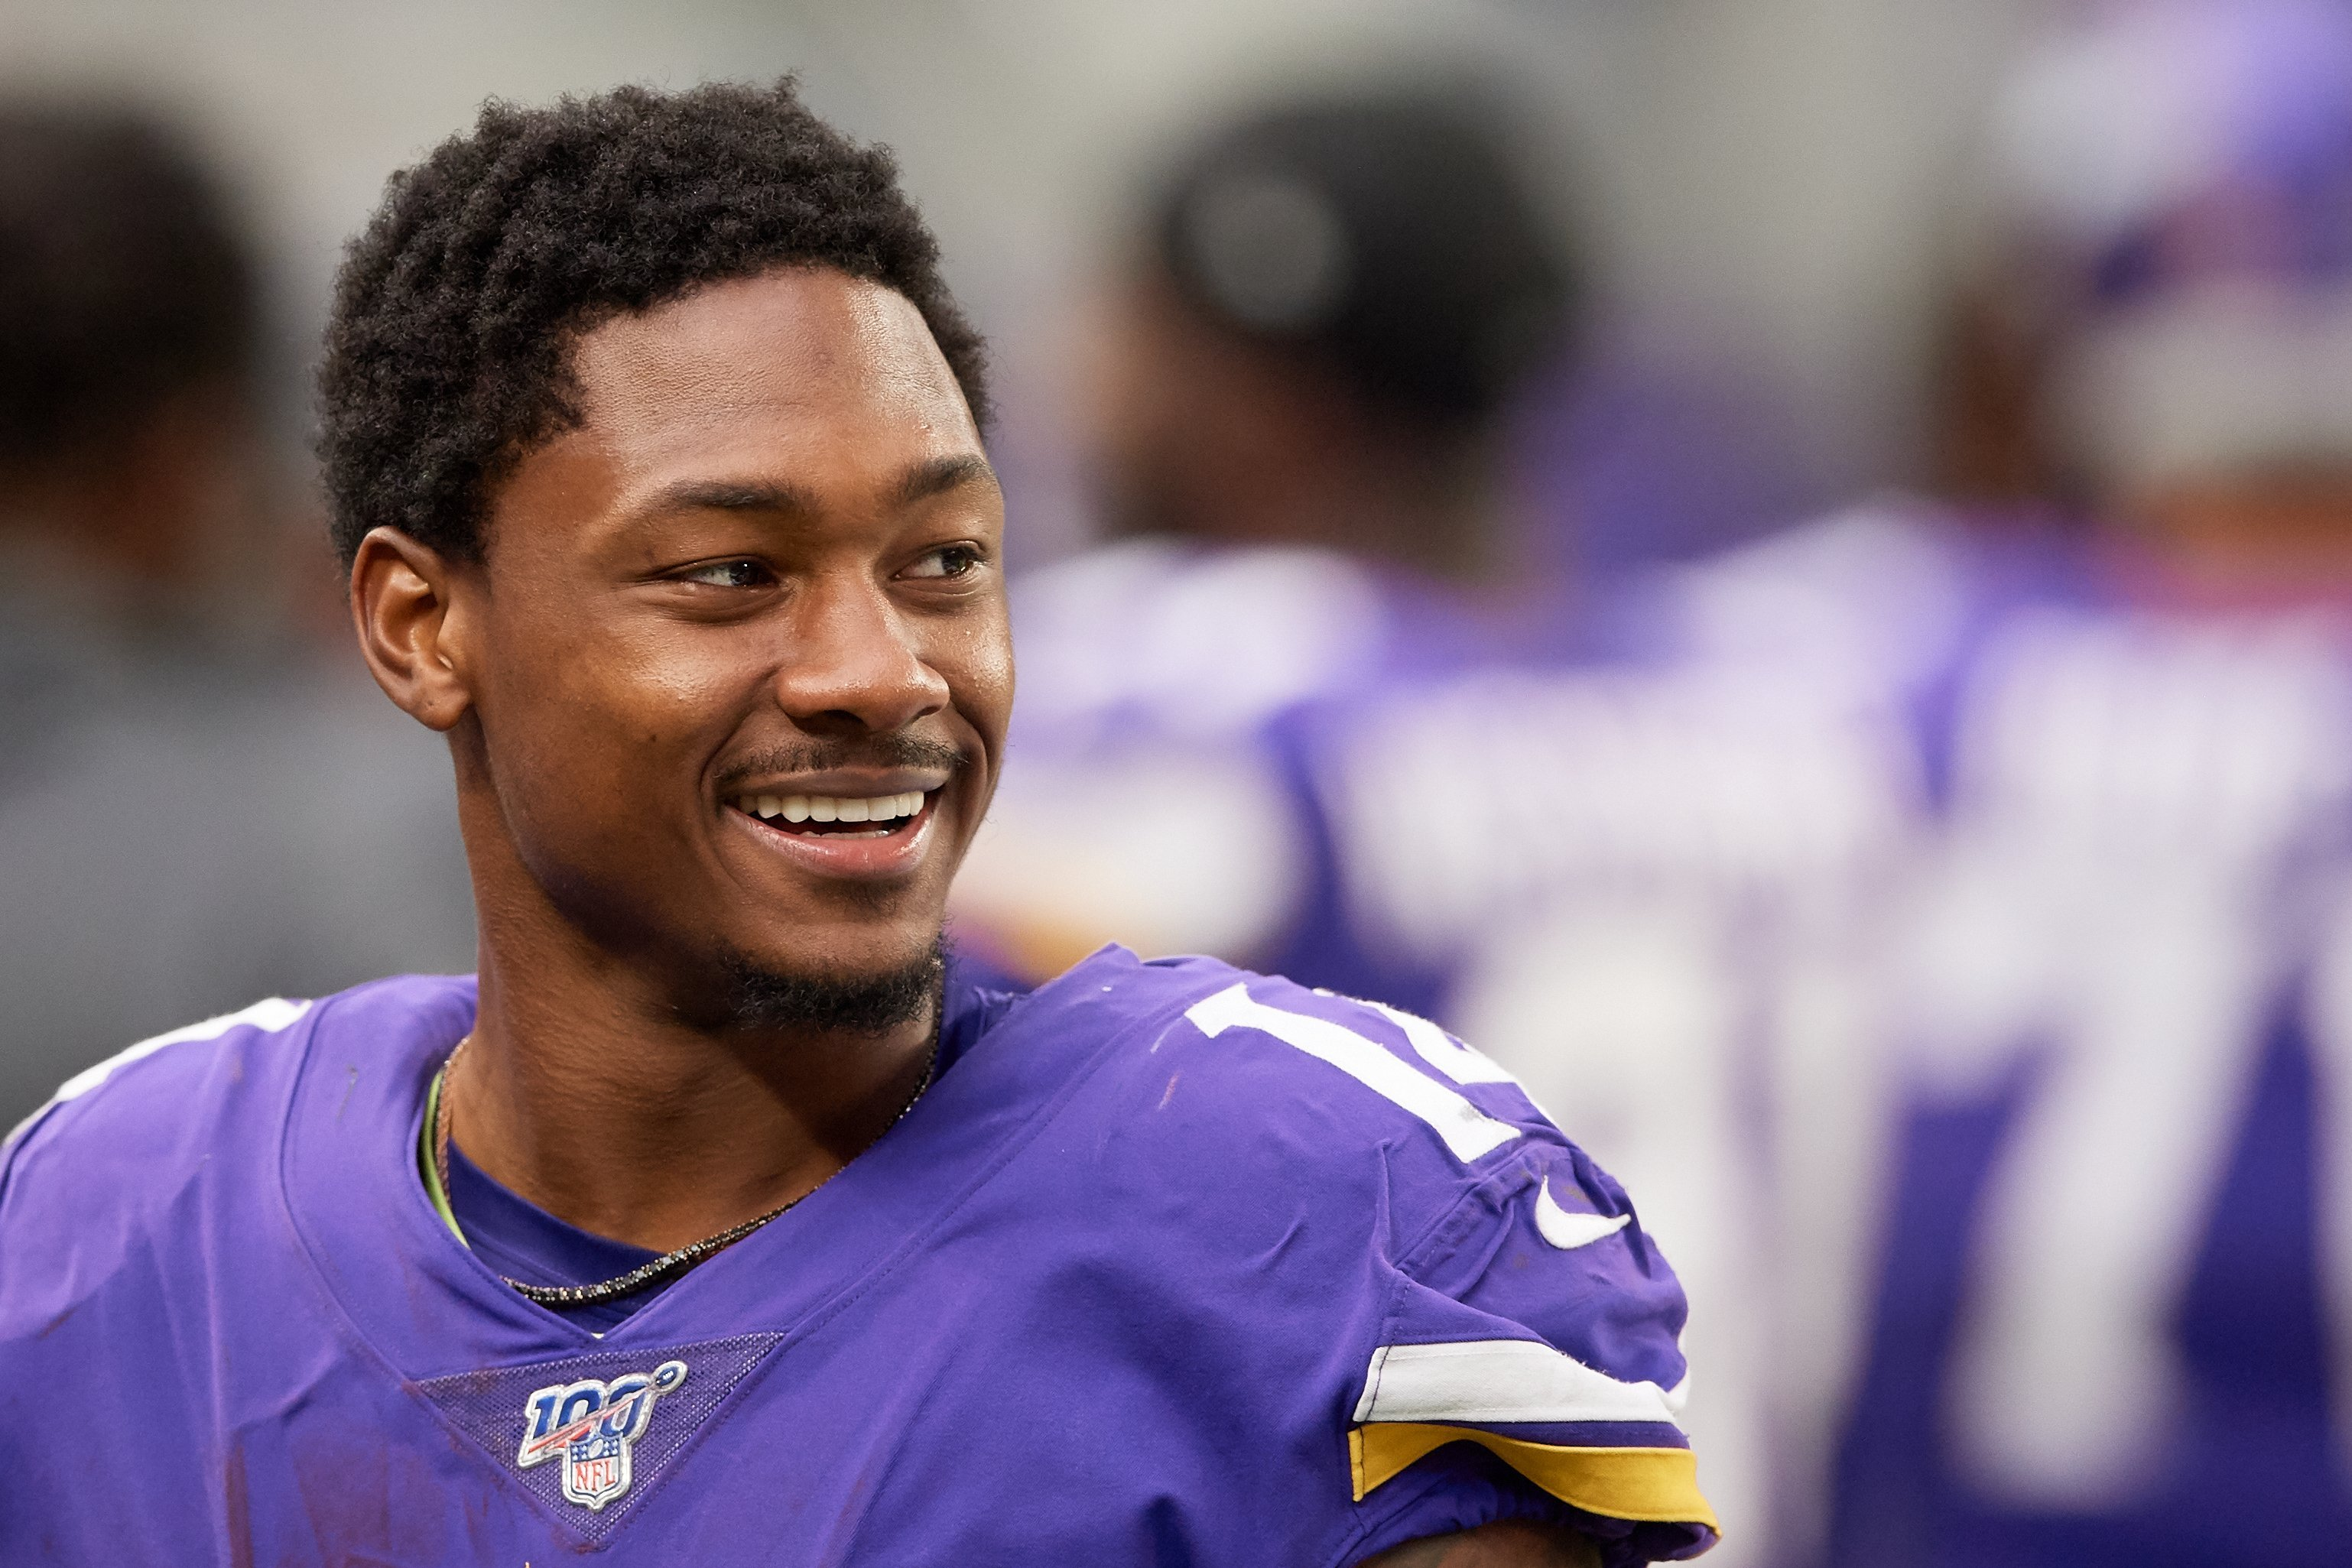 Vikings receiver Stefon Diggs channels his inner villain with custom 'Joker' cleats